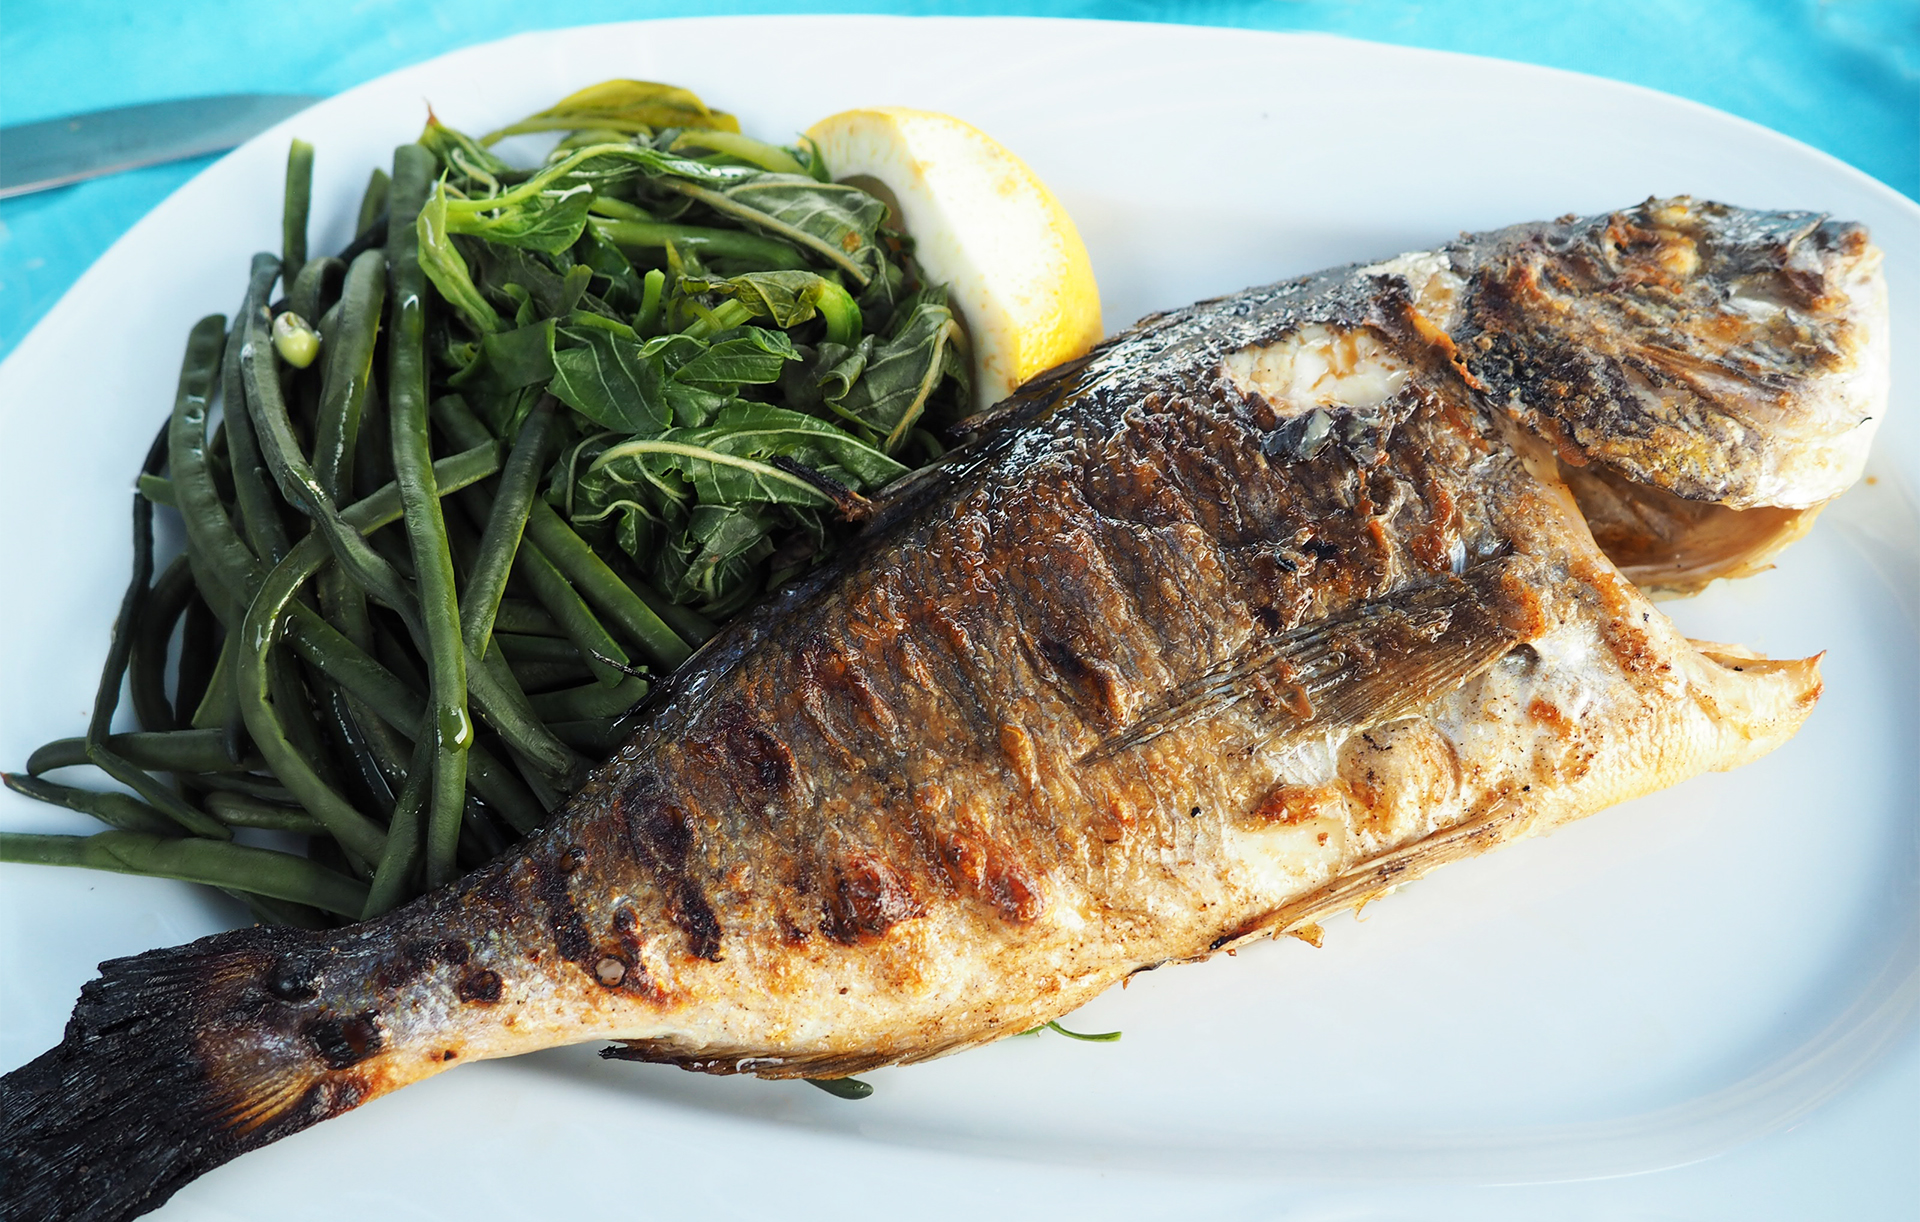 Lunch is served, a plate with freshly caught and grilled fish with locally grown green beans and a slice of fresh lemon